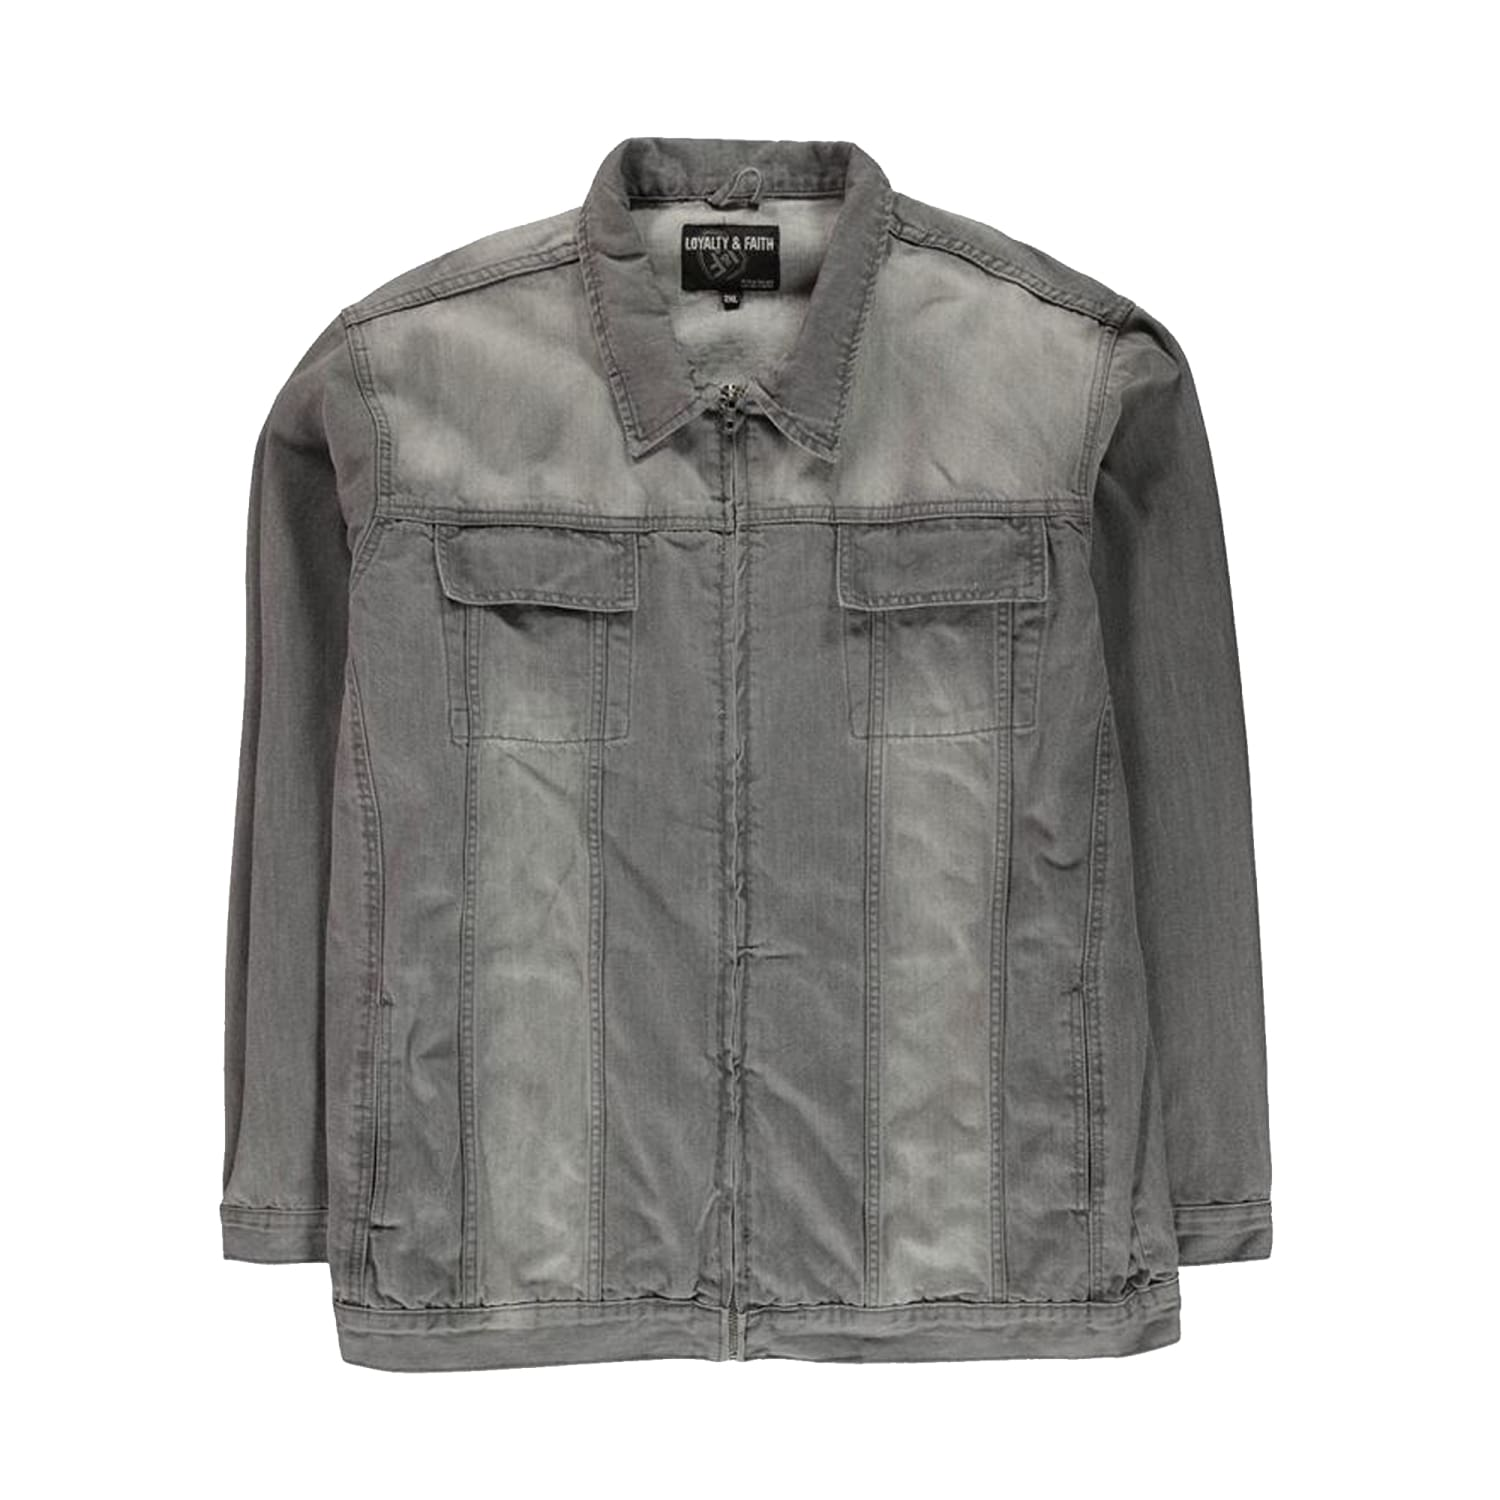 Loyalty & Faith Denim Jacket - L601494 - Fabio - Grey Wash 1